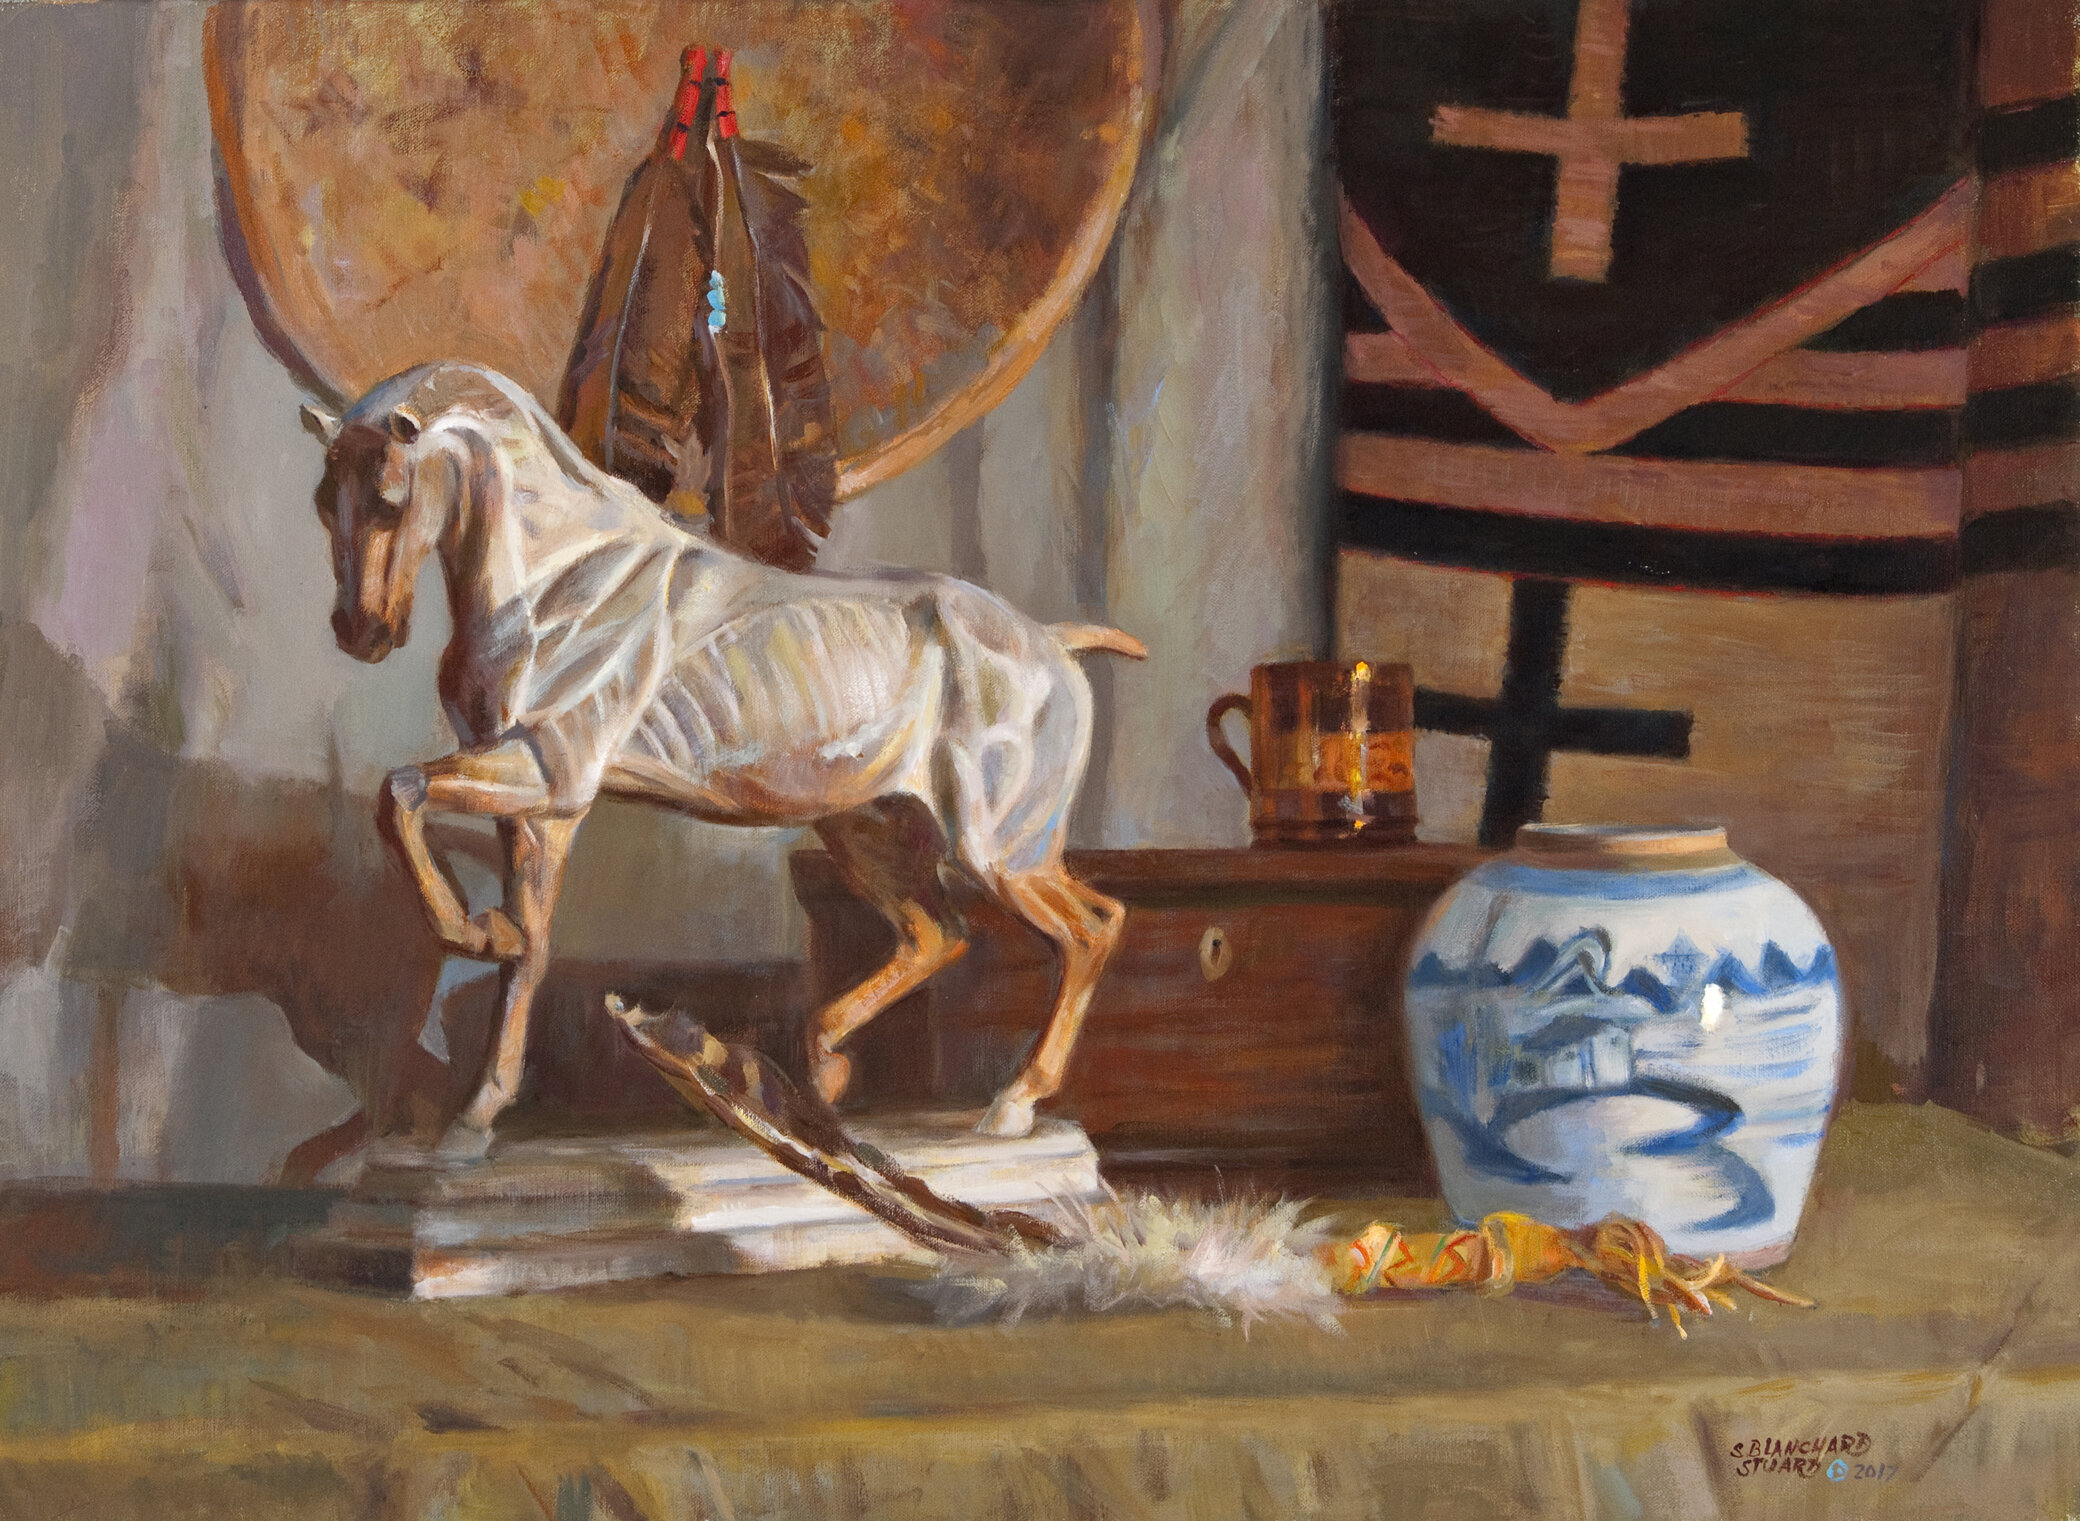 Anatomical Horse, 22 x 30, oil on linen